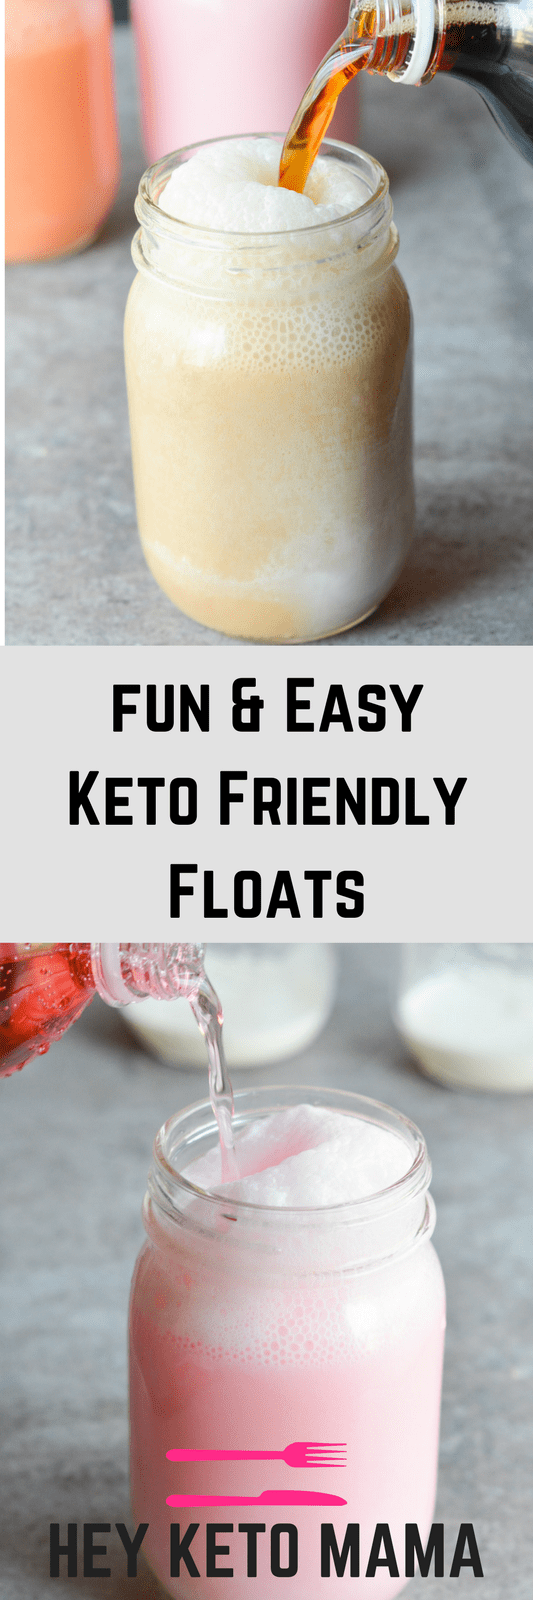 These Keto Friendly Floats will help you wash down your favorite meal in a low carb, high fat way! They're ridiculously simple and amazingly yummy! | heyketomama.com